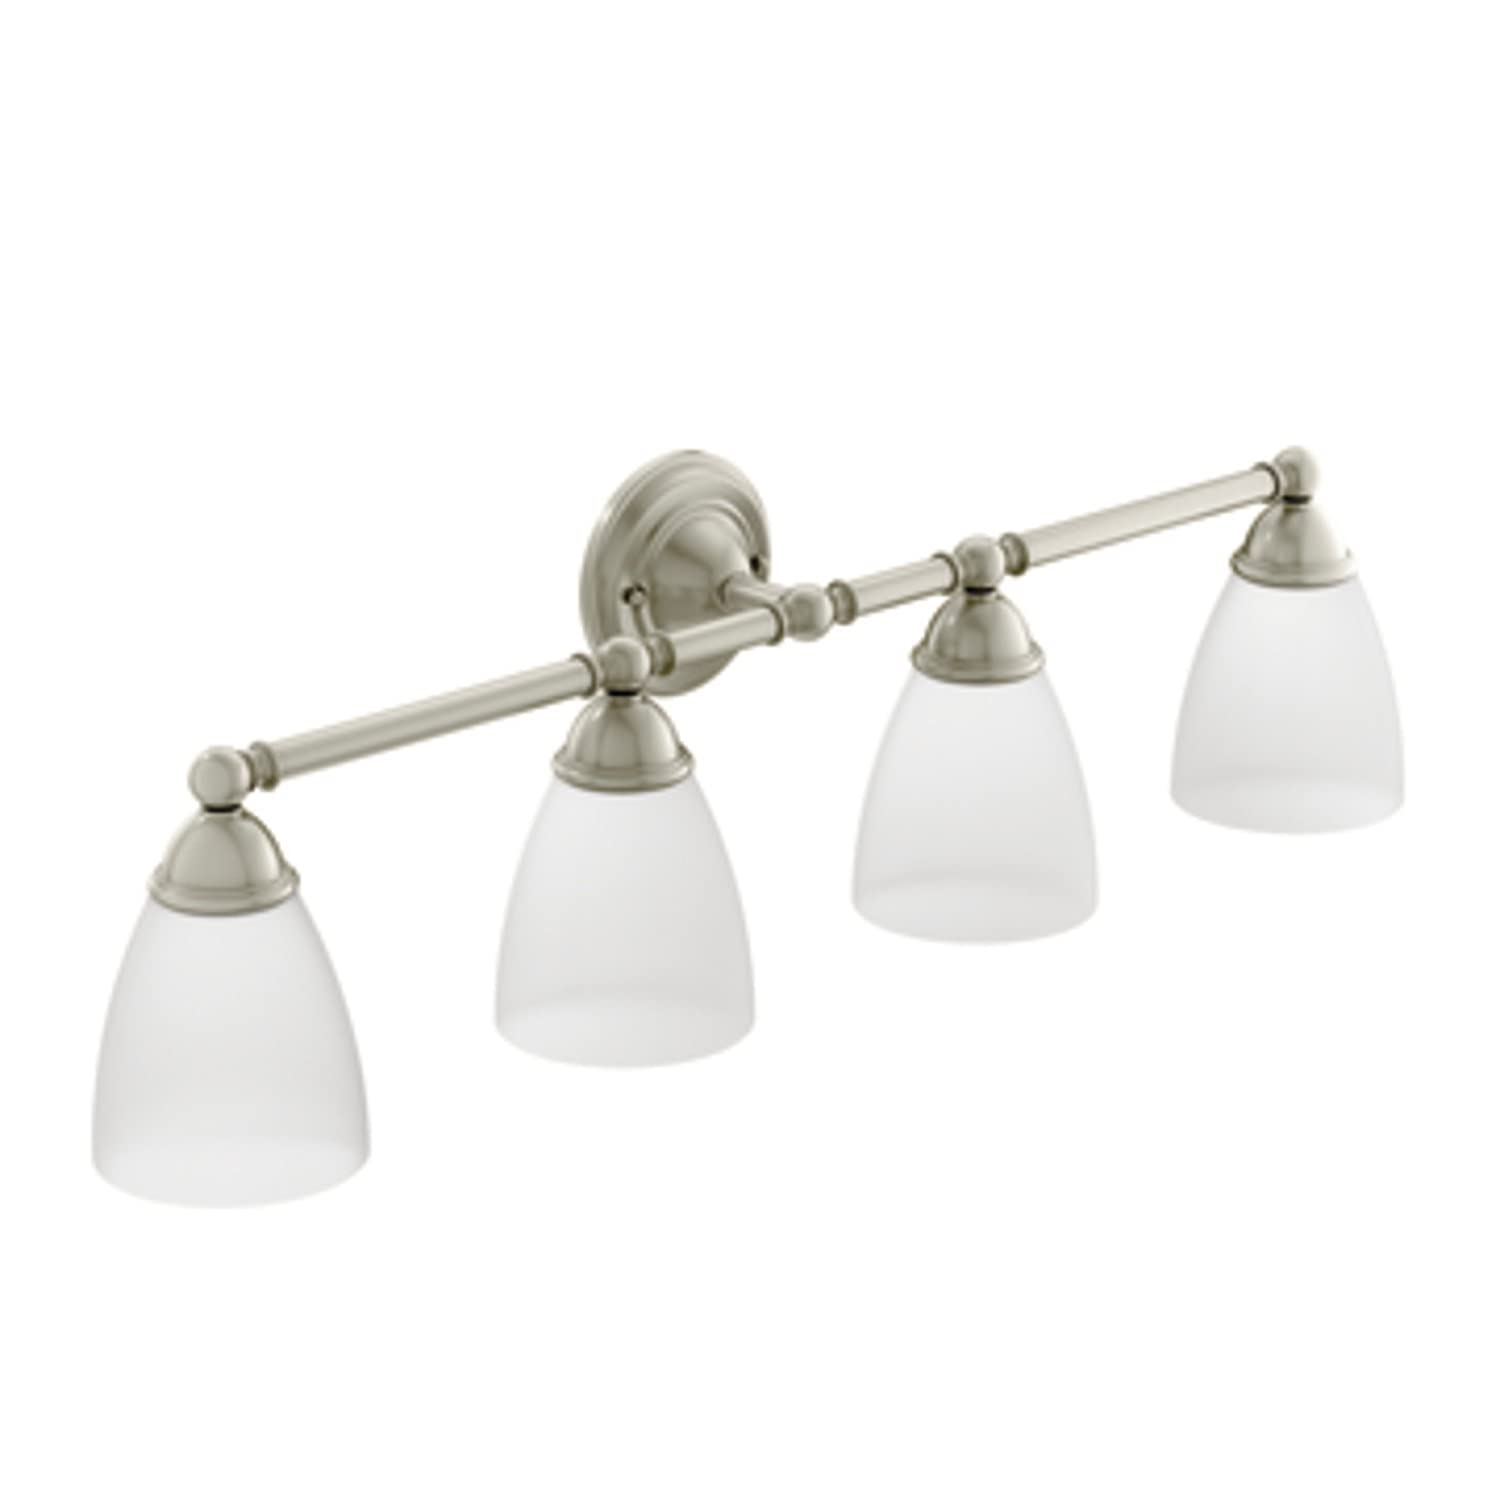 Moen yb2264bn brantford bath lighting brushed nickel bathroom moen yb2264bn brantford bath lighting brushed nickel bathroom hardware amazon aloadofball Image collections